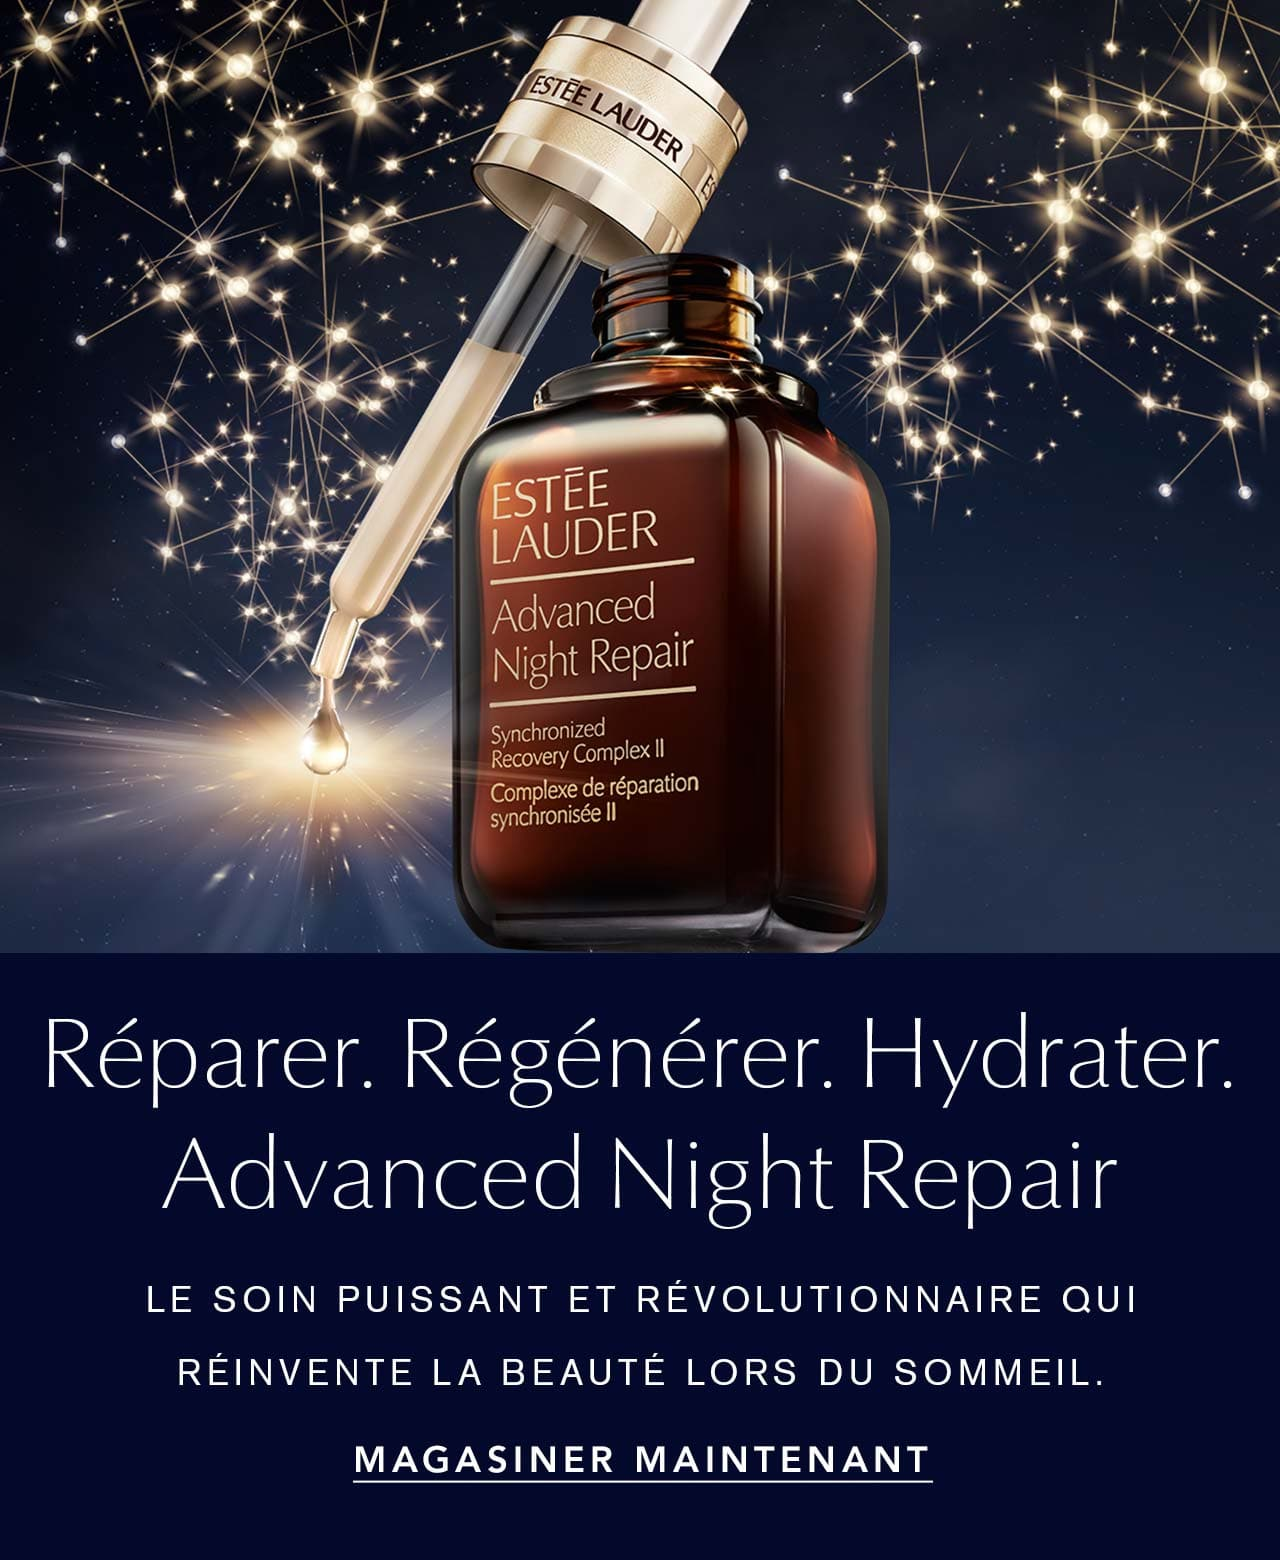 Advanced Night Repair. The revolutionary power signal that reinvents beauty sleep